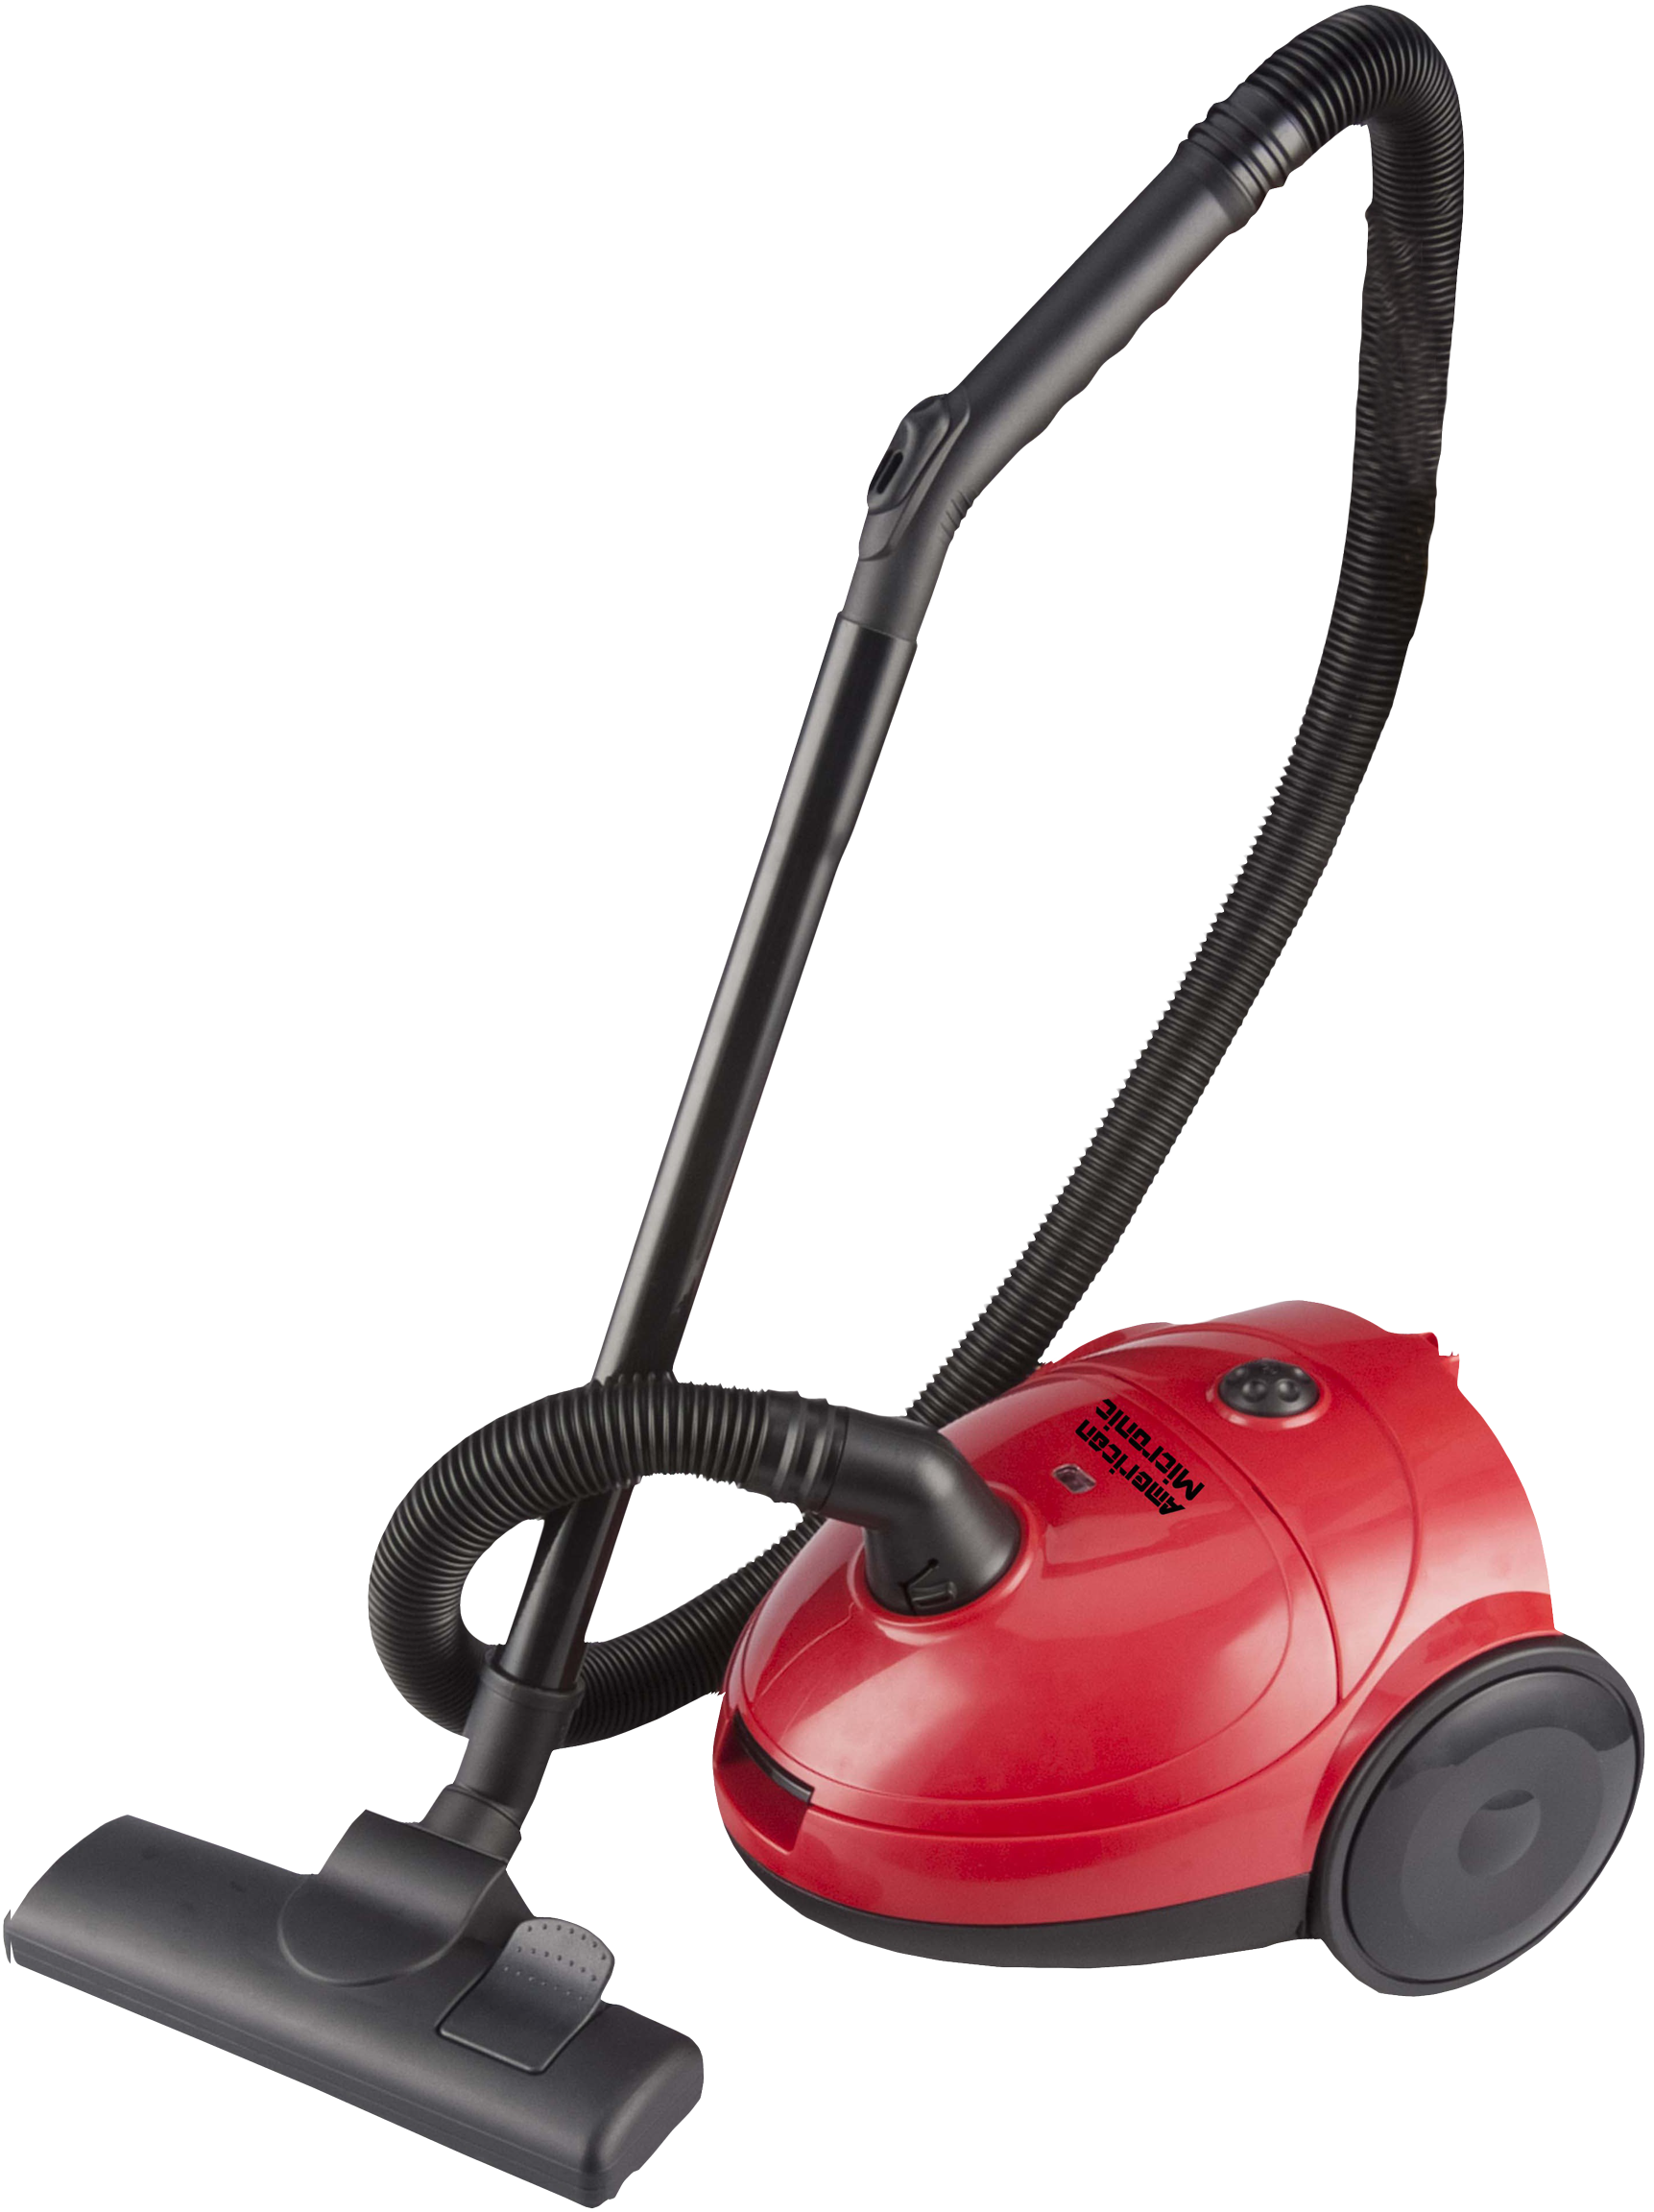 Office Vacuum Cleaner PNG Image Vacuum cleaner, Cleaners